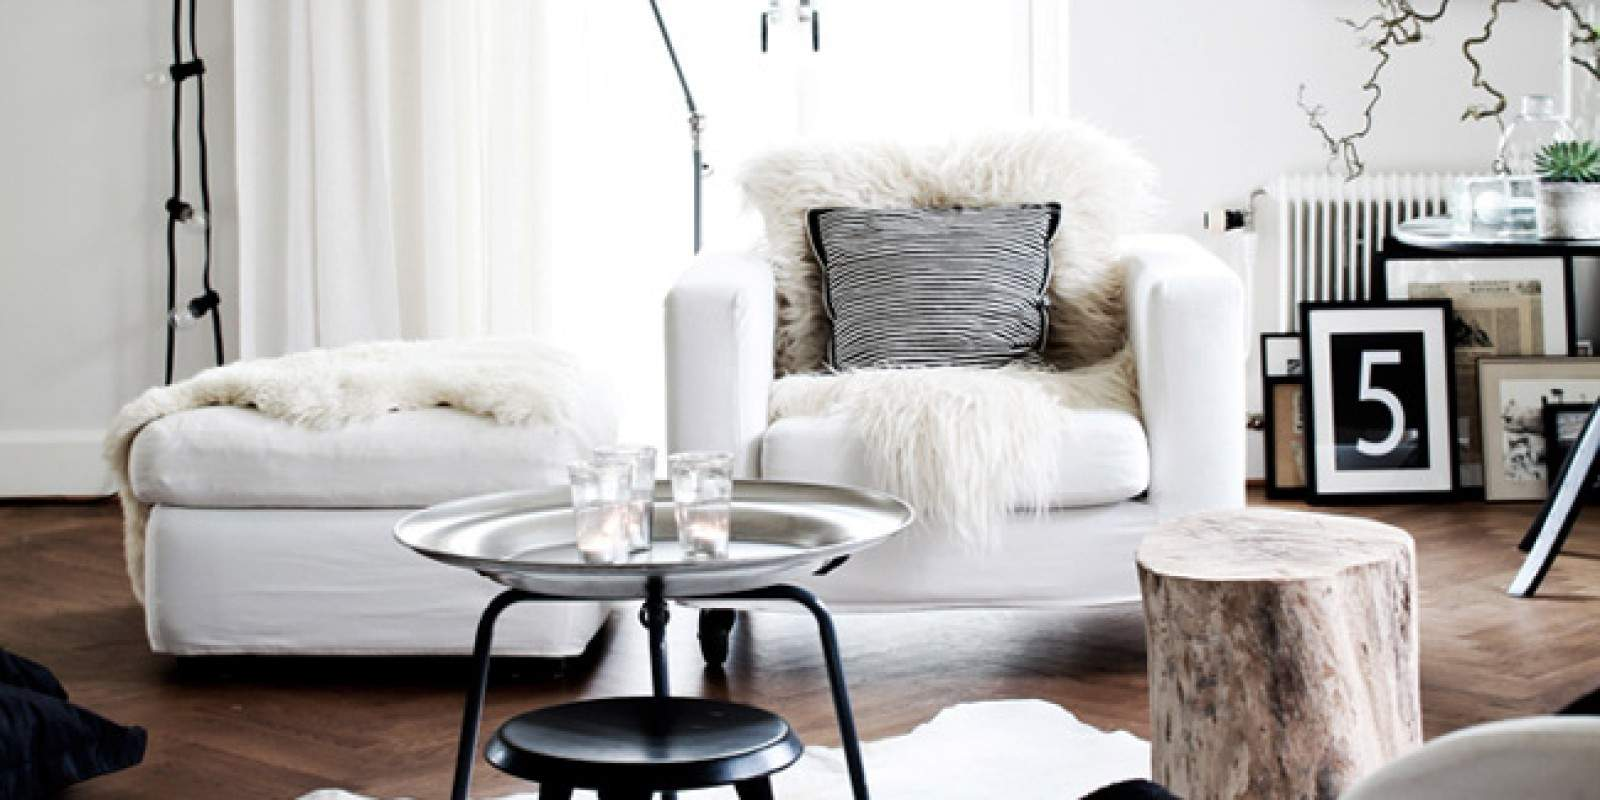 dossier le style scandinave entre sobri t et douceur jo yana. Black Bedroom Furniture Sets. Home Design Ideas